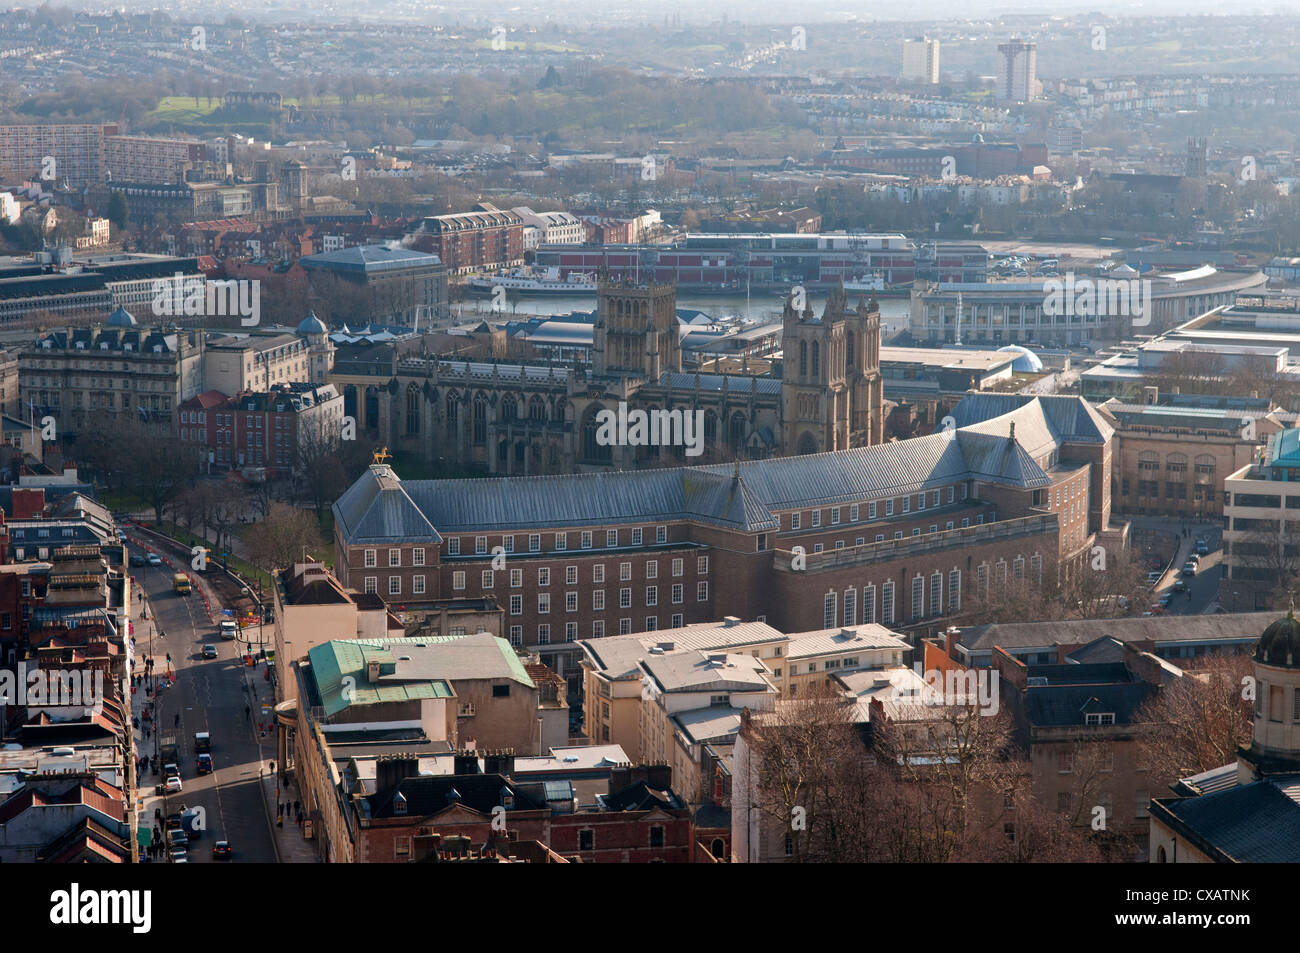 Cathedral and harbour, Bristol, England, Great Britain, United Kingdom, Europe - Stock Image